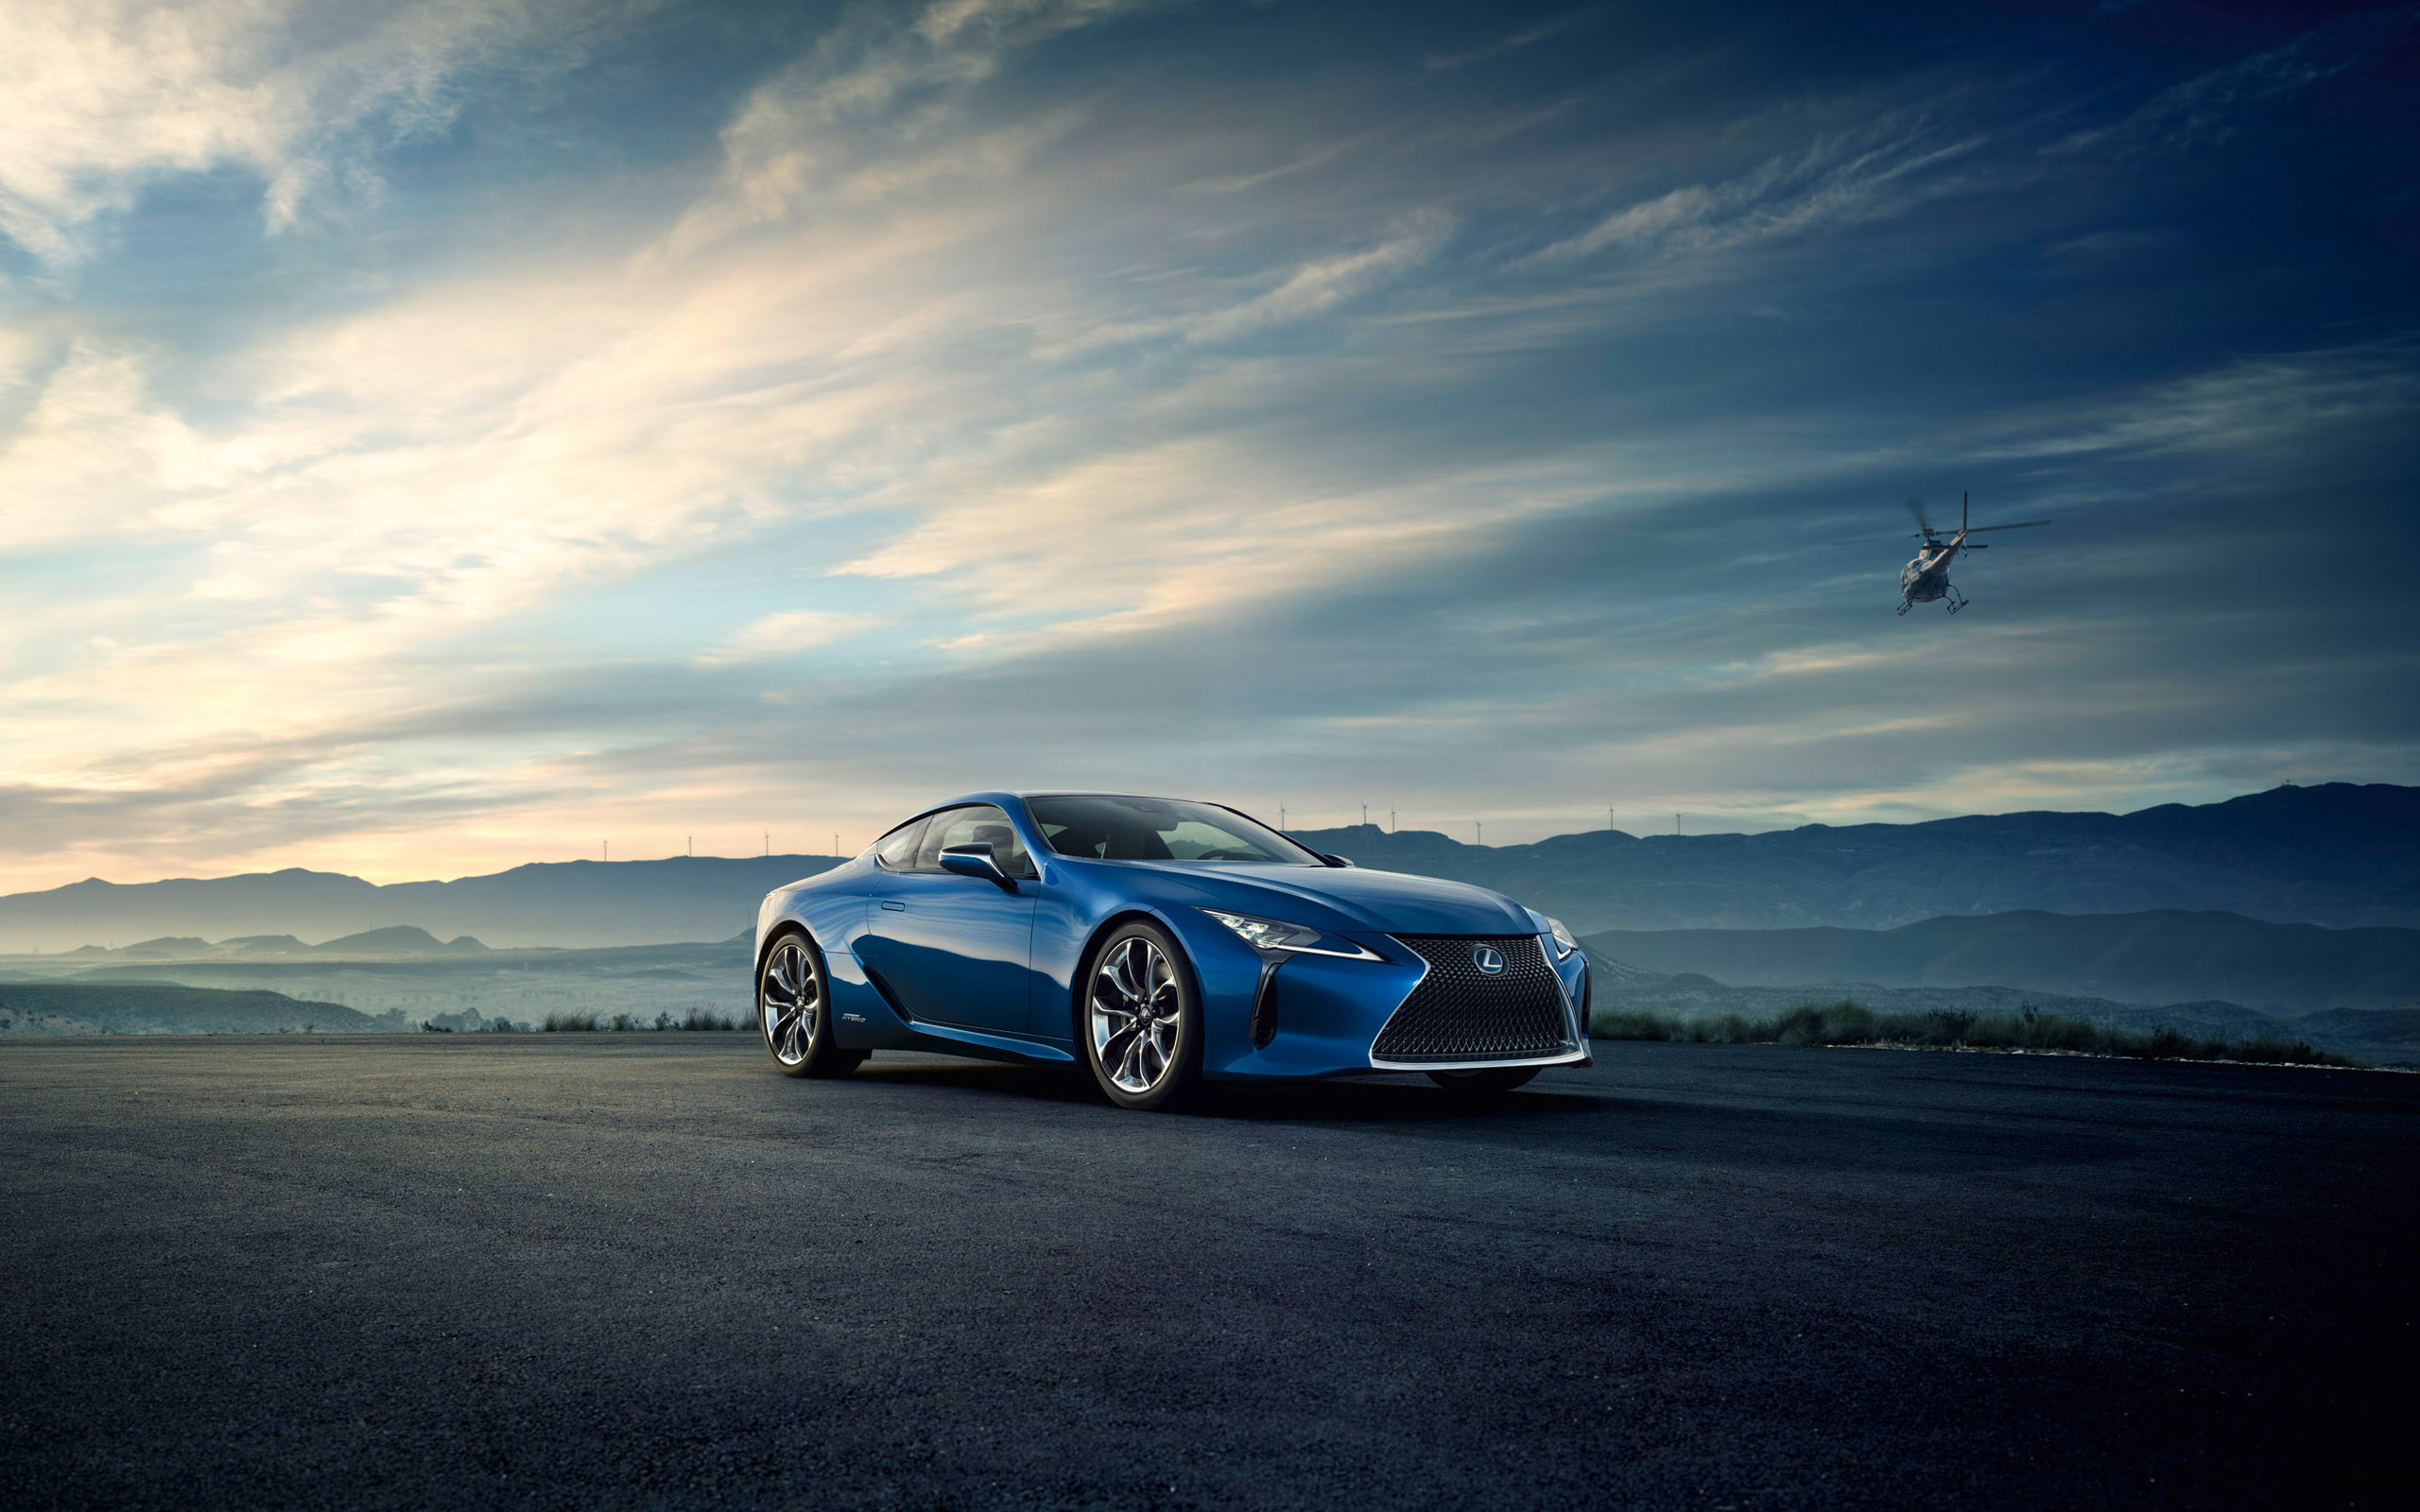 2016 Lexus LC 500h Luxury Coupe 2 Wallpaper | HD Car Wallpapers | ID ...